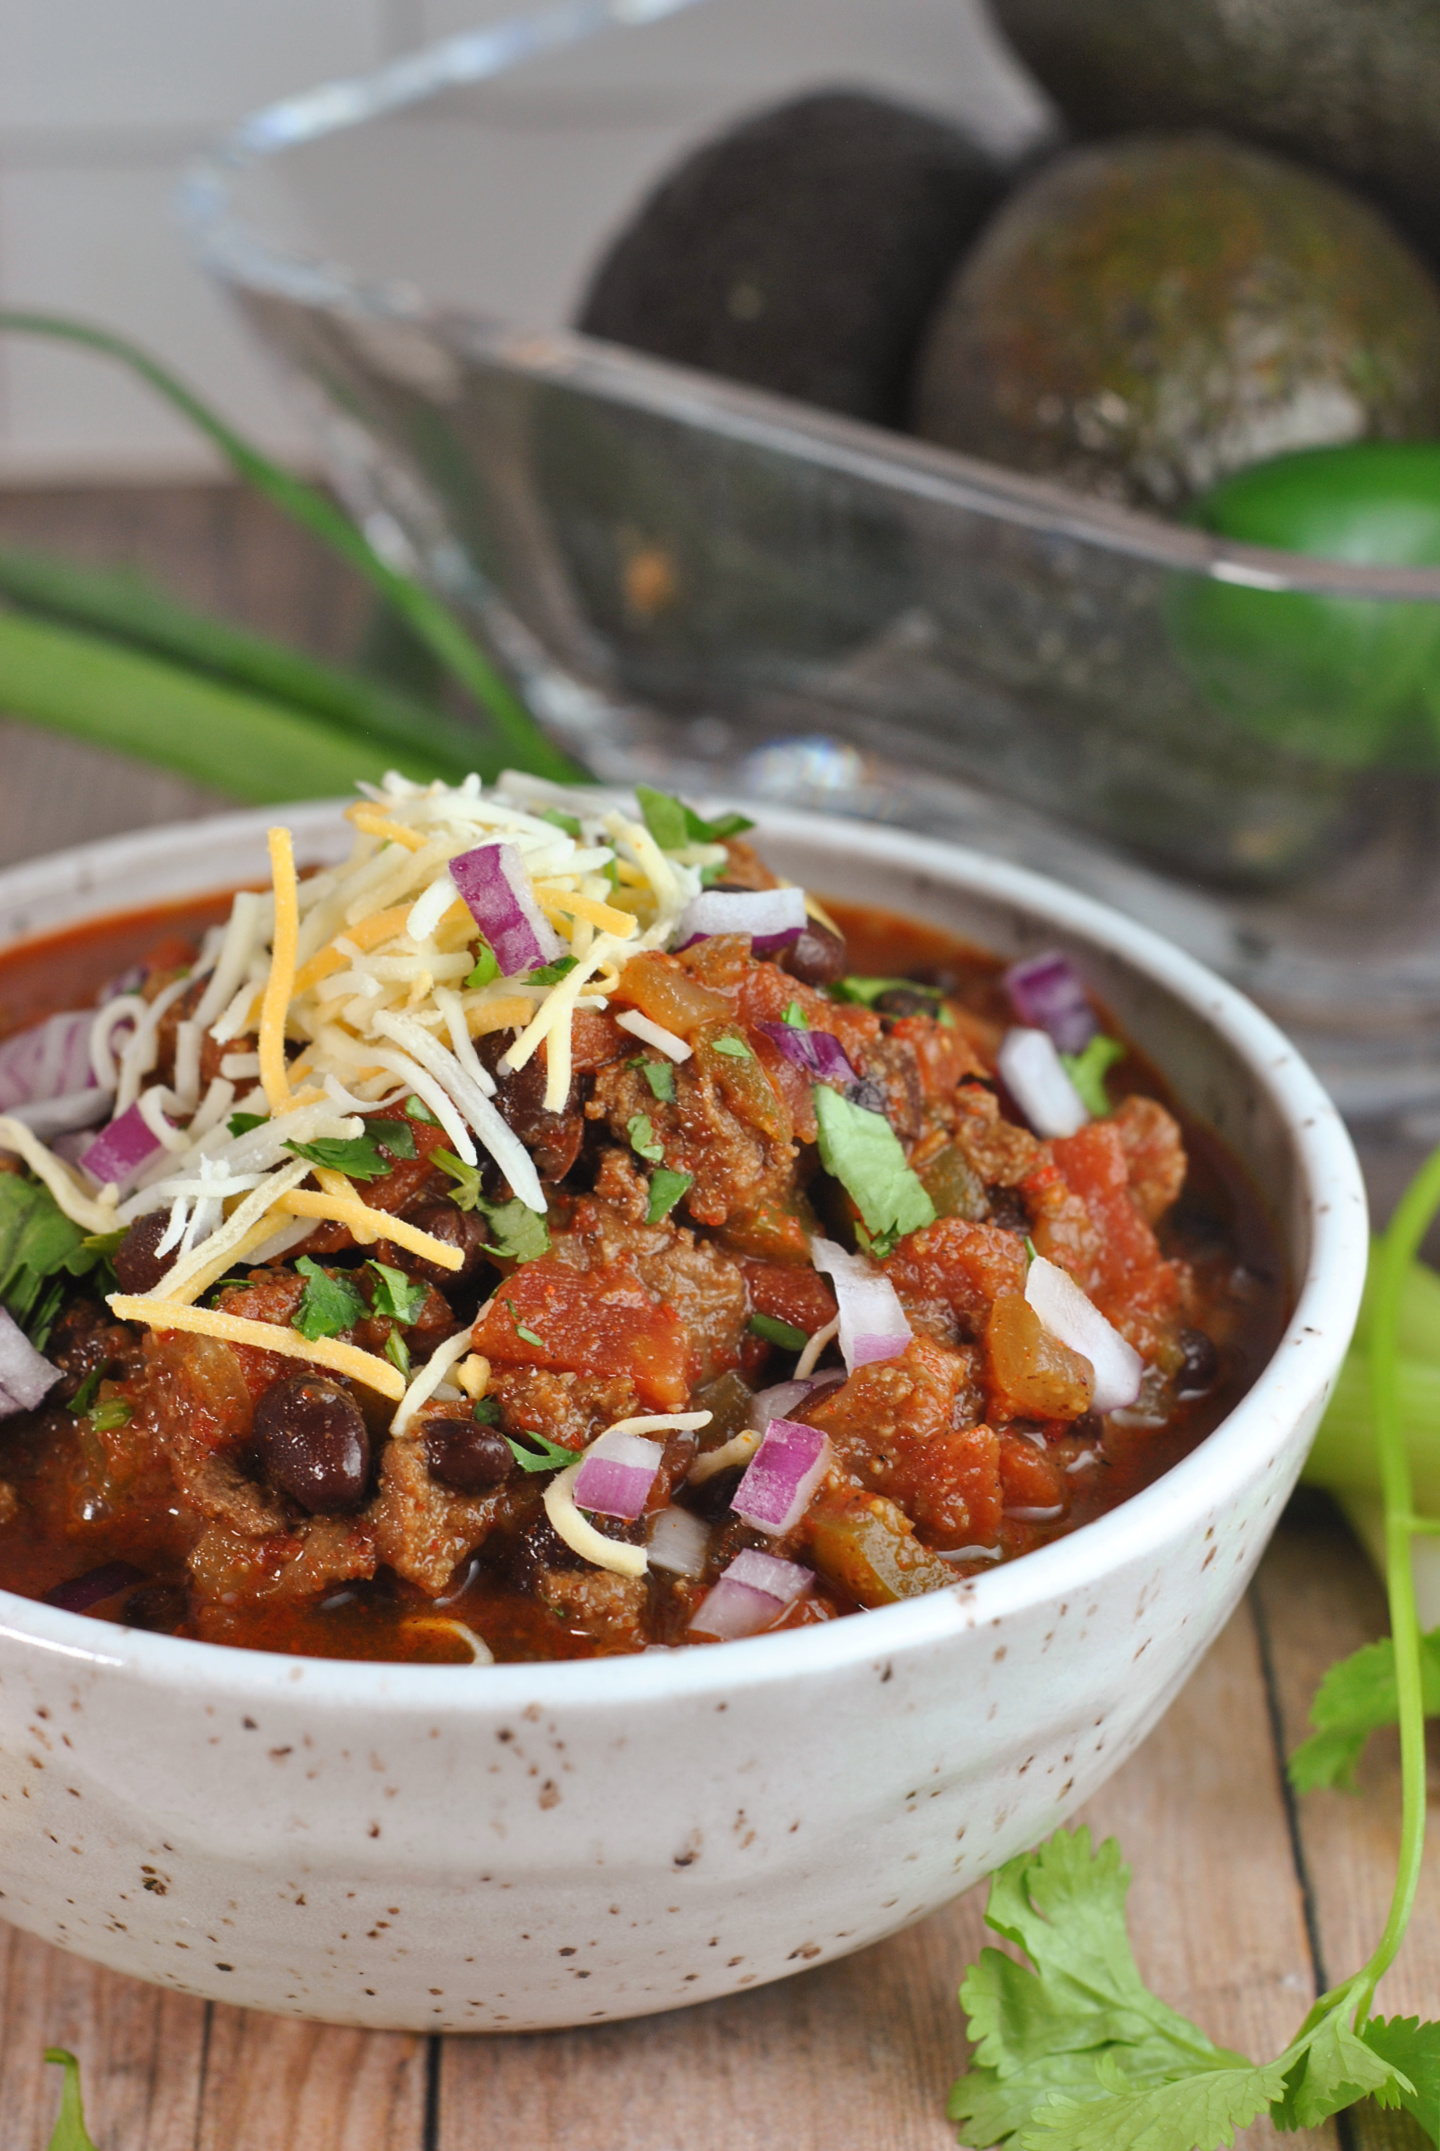 Spicy Turkey and Black Bean Chili via @preventionrd